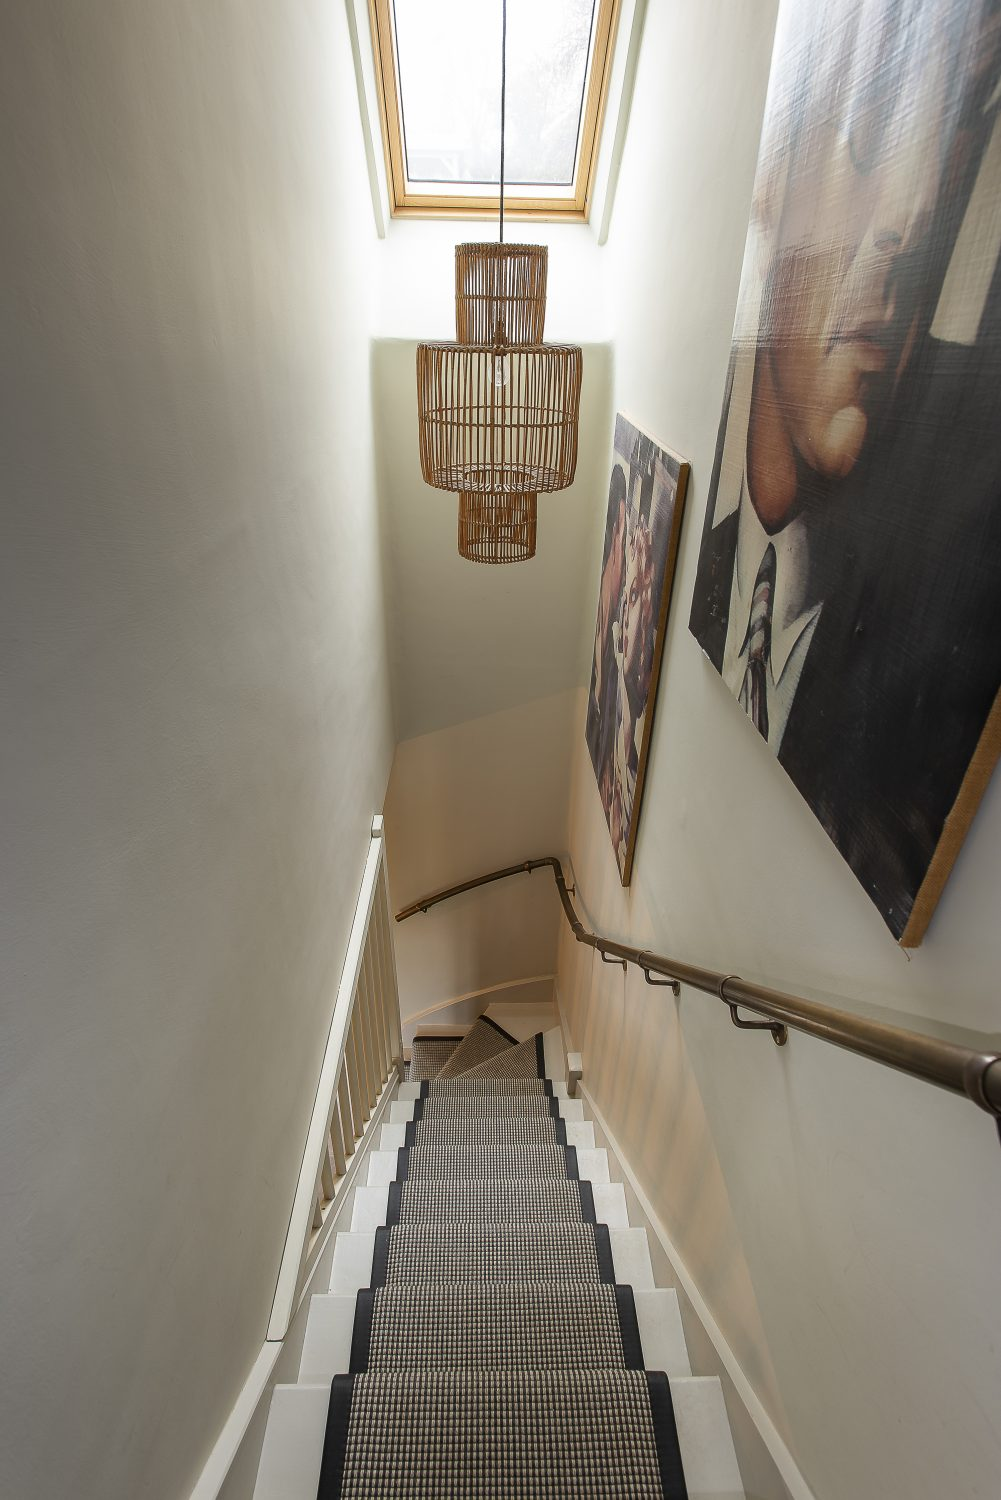 Large-scale artworks line the stairway walls. The sisal-style carpet continues the natural theme